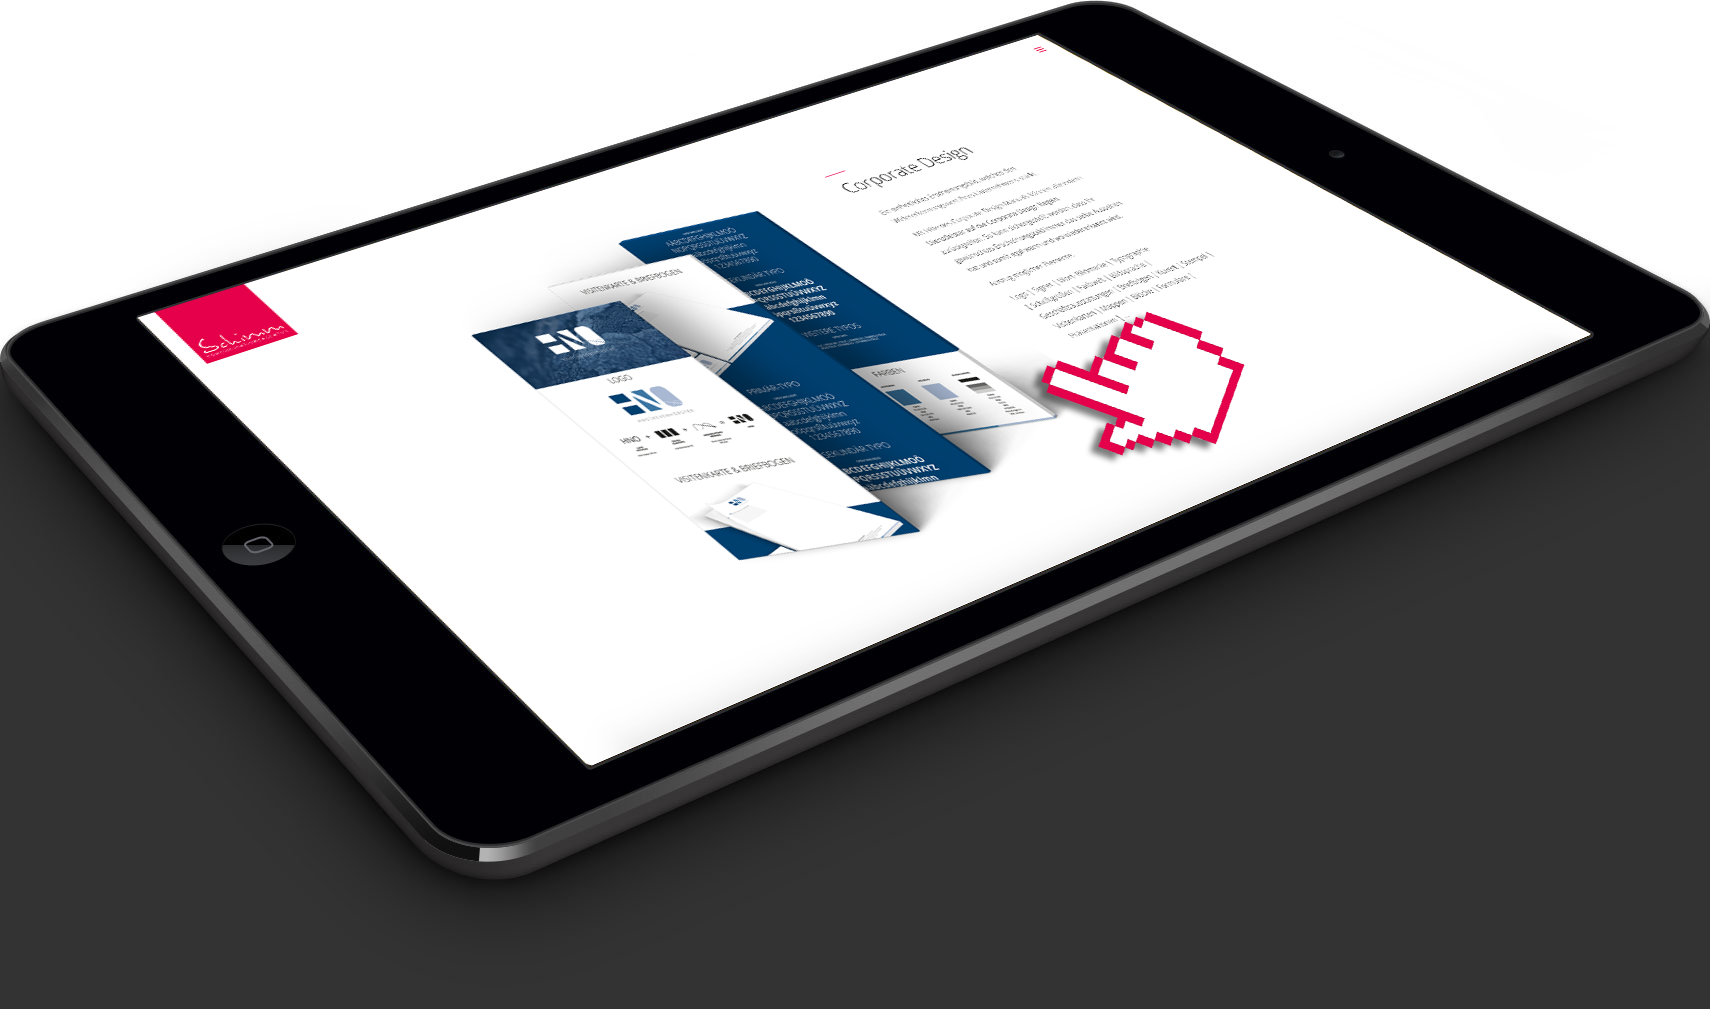 schimm_ipad_corporate-design